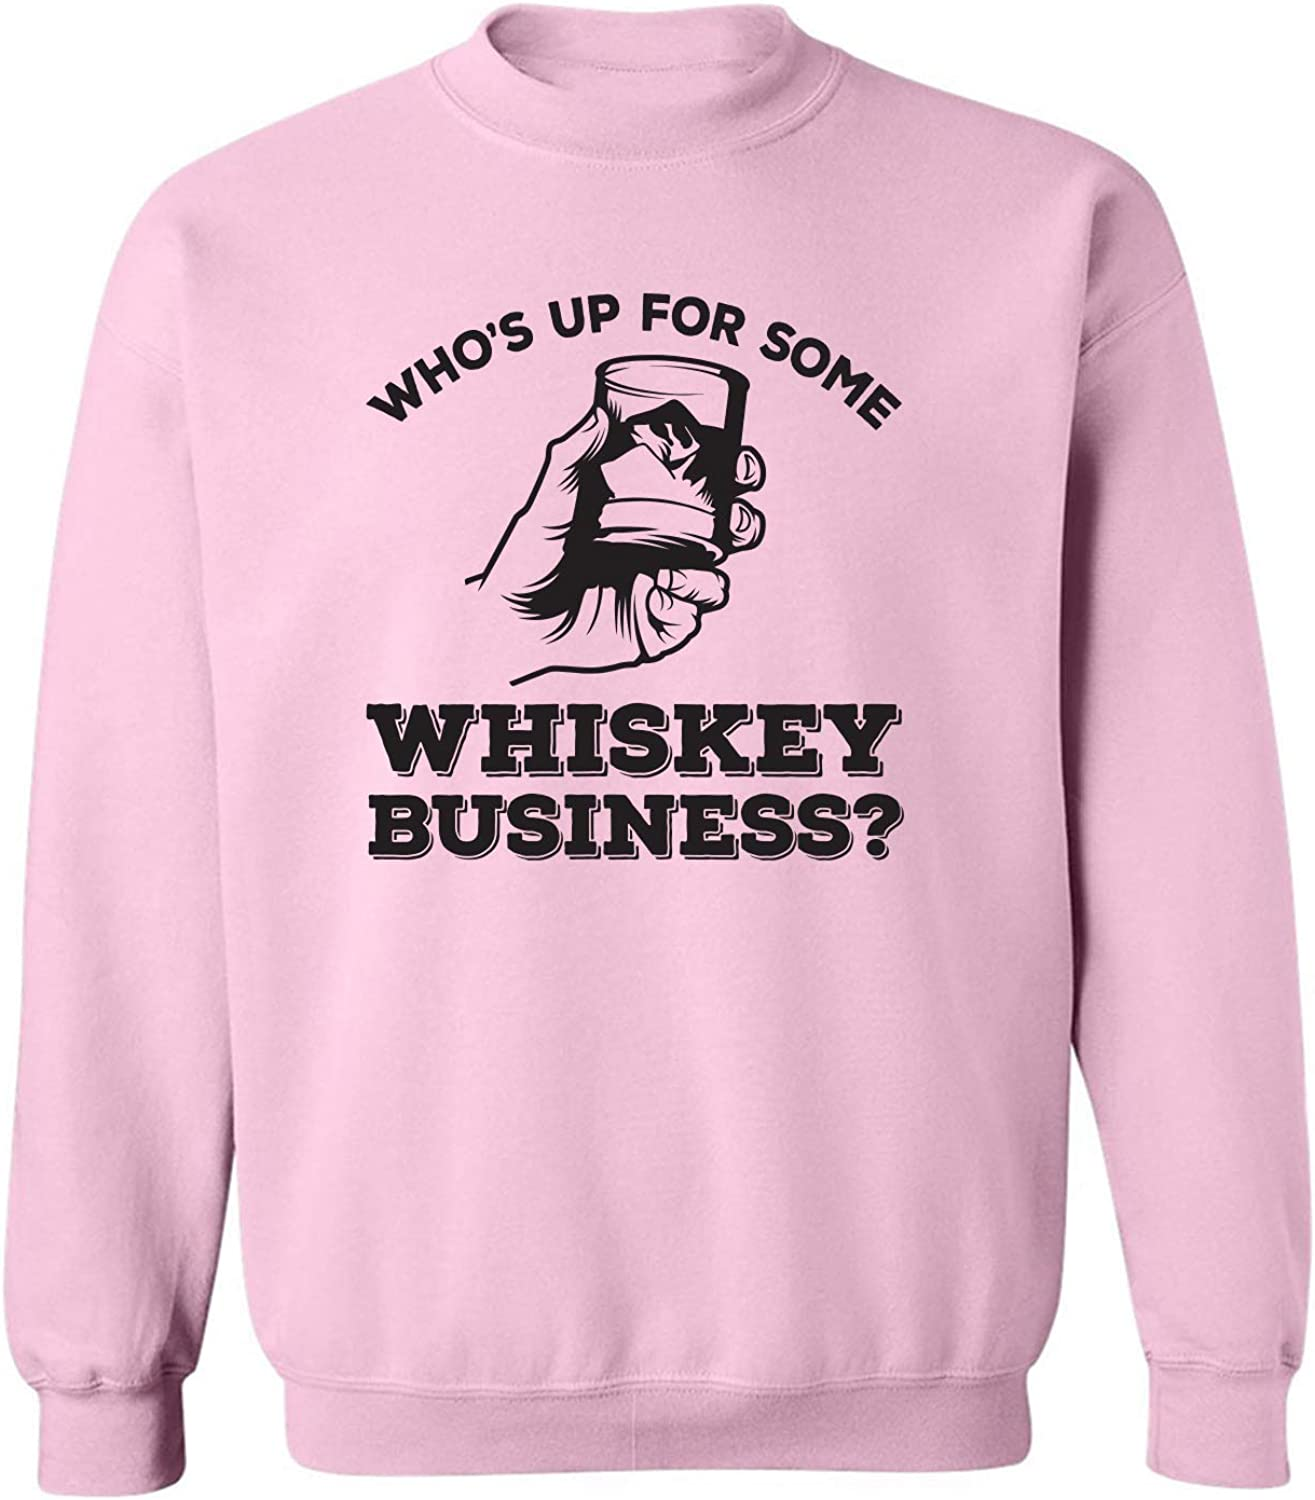 Who's Up For Some Whiskey Business? Crewneck Sweatshirt